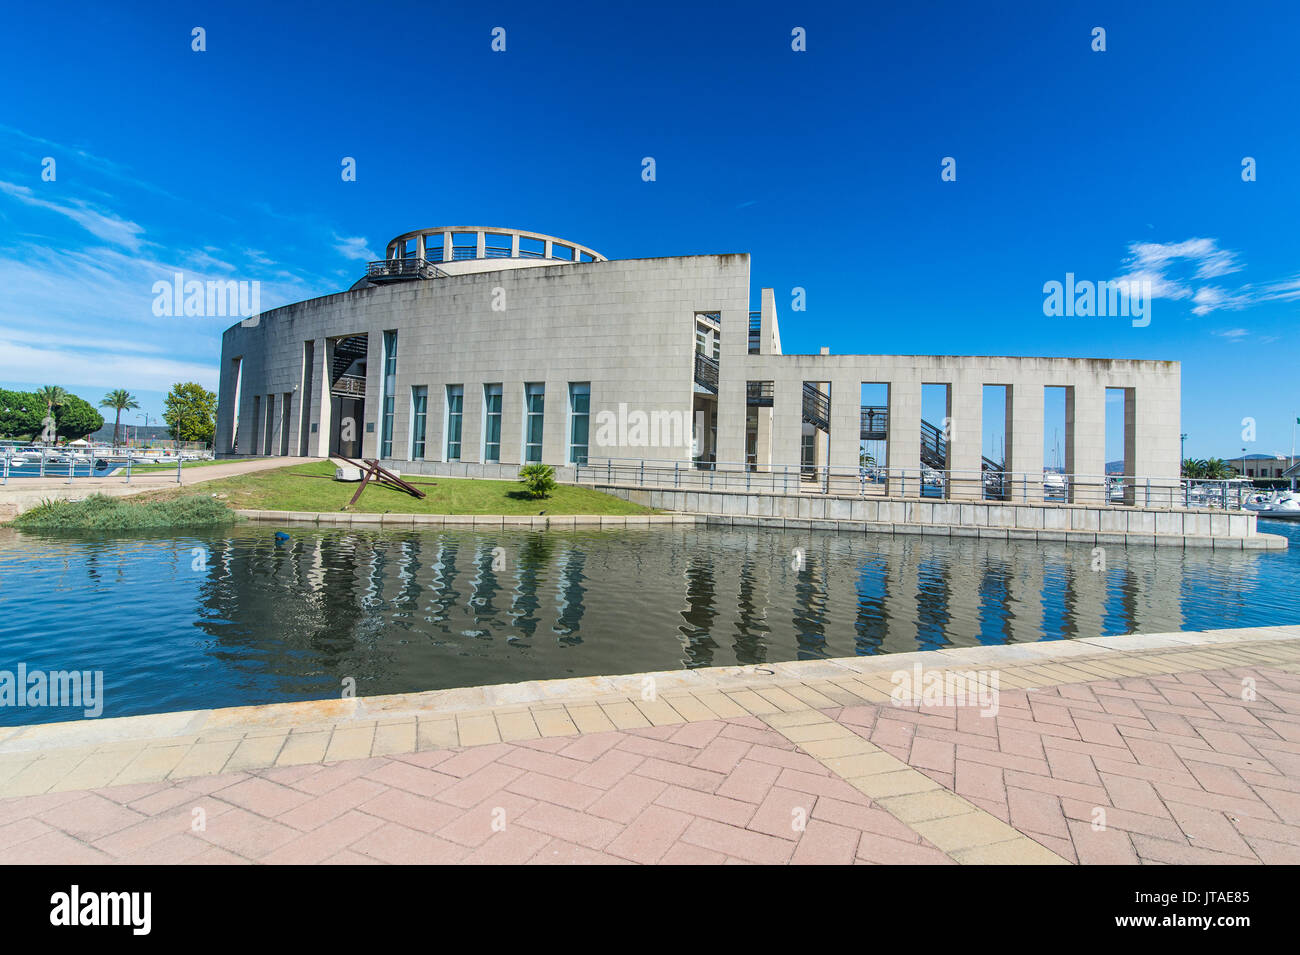 Modern National Archaeological Museum of Olbia, Sardinia, Italy, Mediterranean, Europe - Stock Image